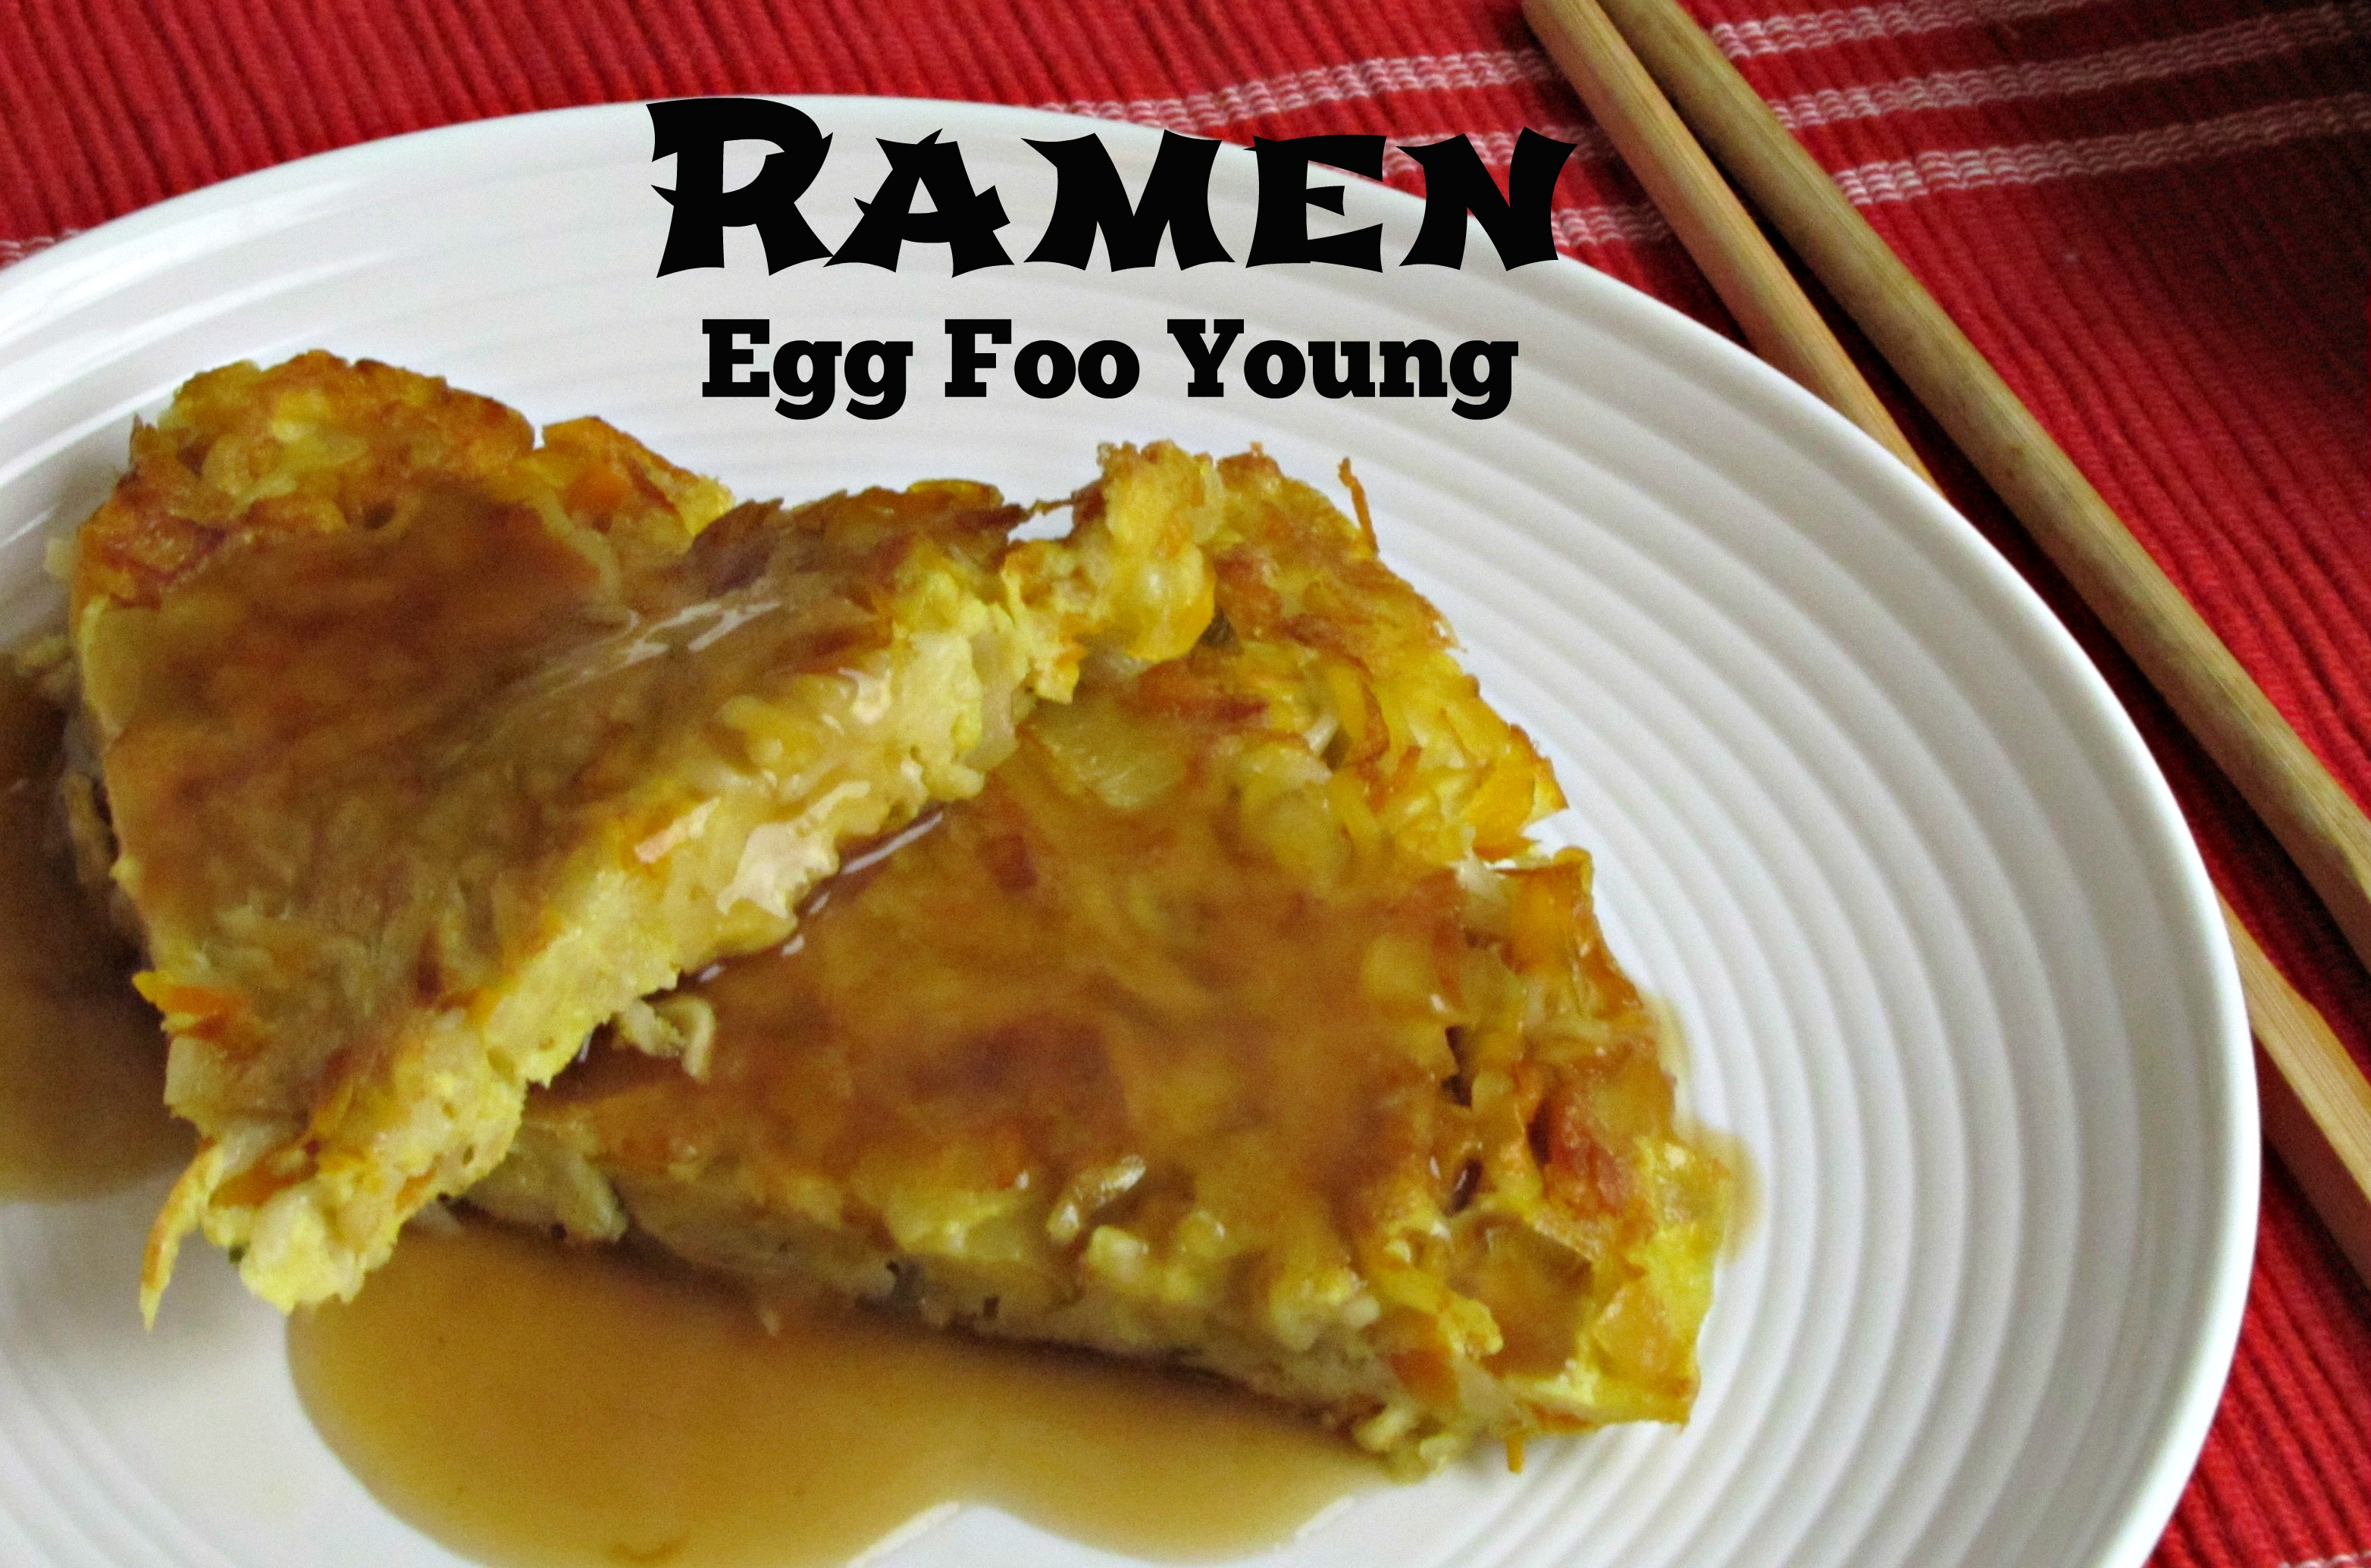 ramen recipes fried Frugal Ramen  Young  Foo Upstate Egg